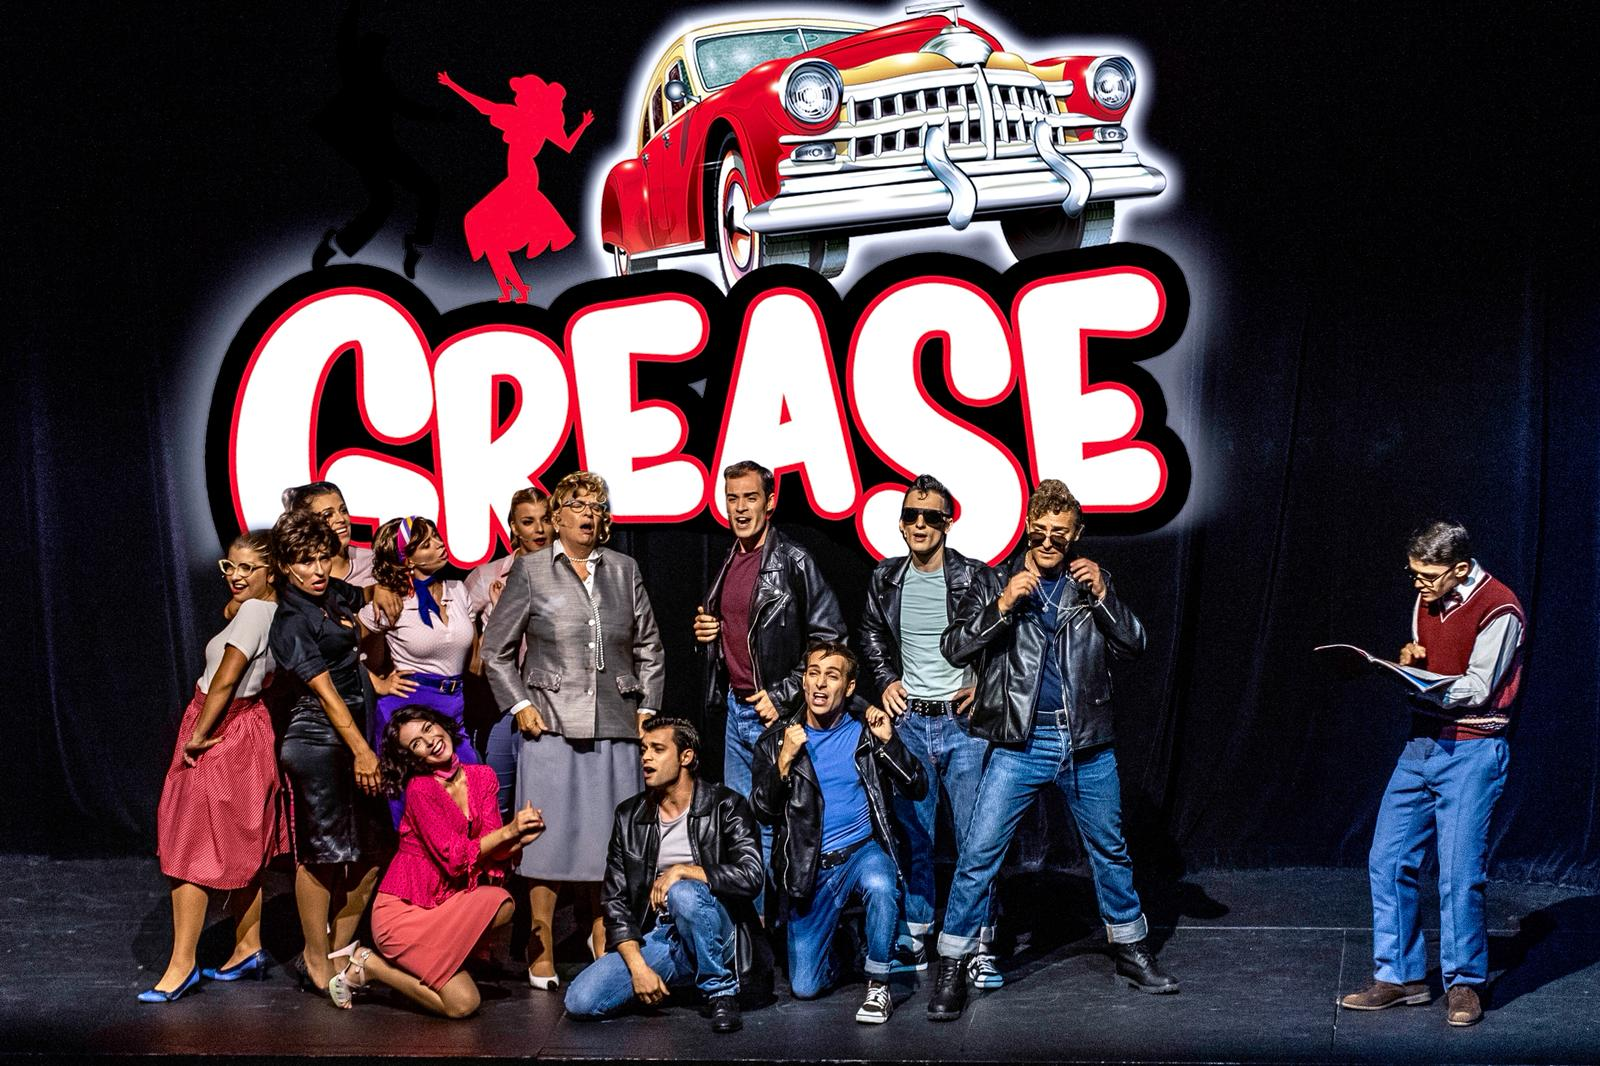 """<span  class=""""uc_style_uc_tiles_grid_image_elementor_uc_items_attribute_title"""" style=""""color:#ffffff;"""">Ana Paula Rocha - Teatro - Grease - Setembro 2018 - 001</span>"""